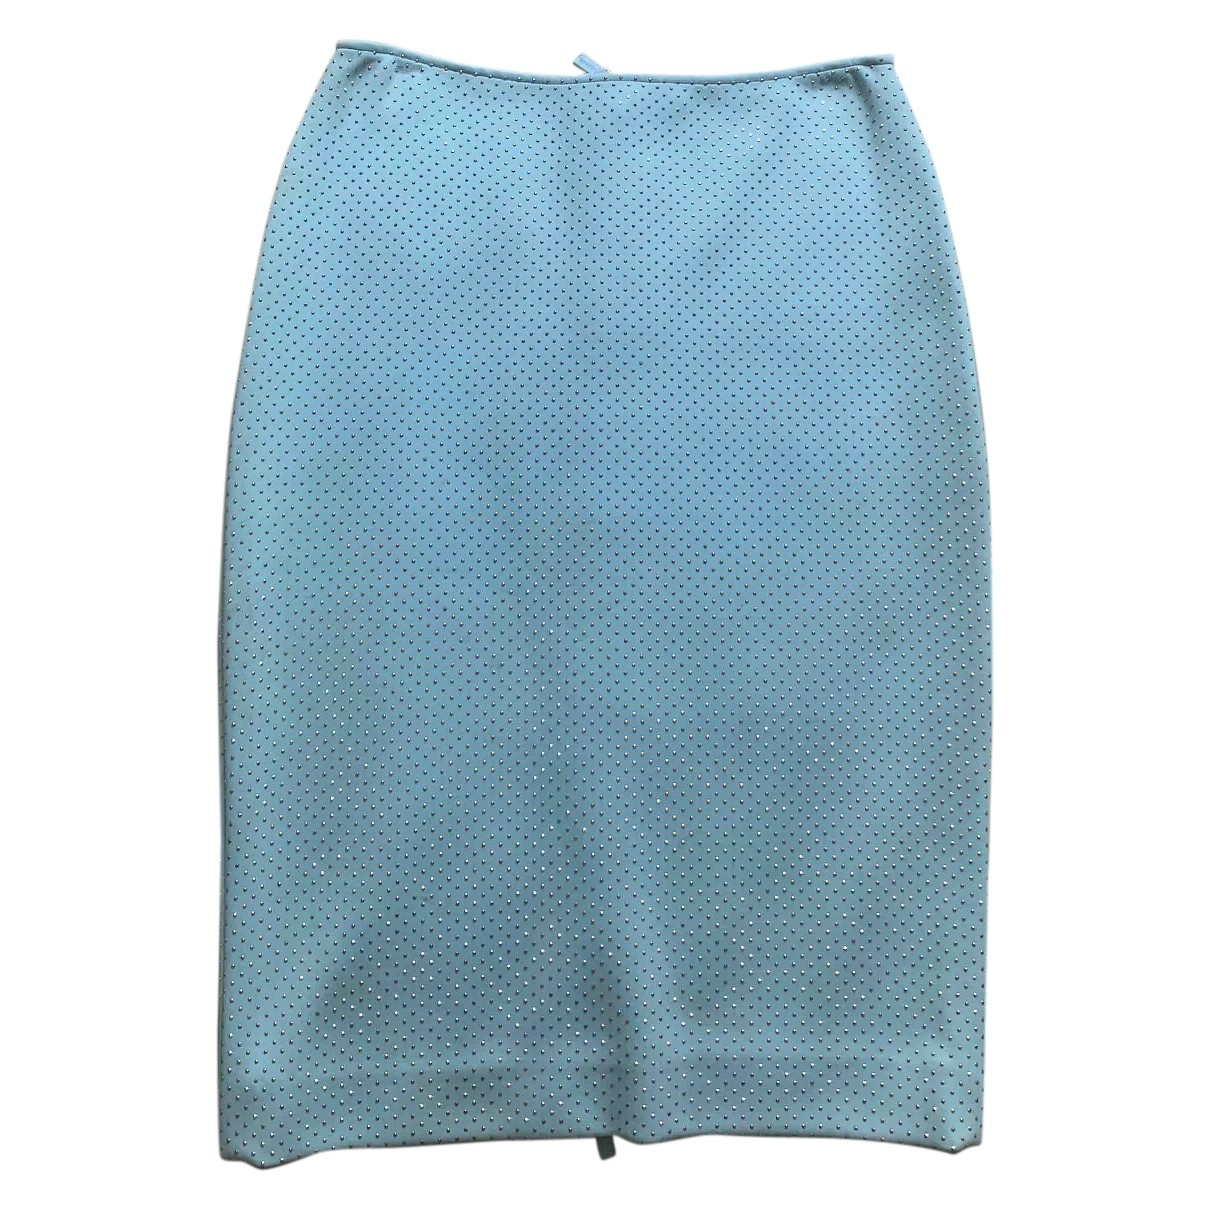 Gianni Versace - Jupe   pour femme - turquoise